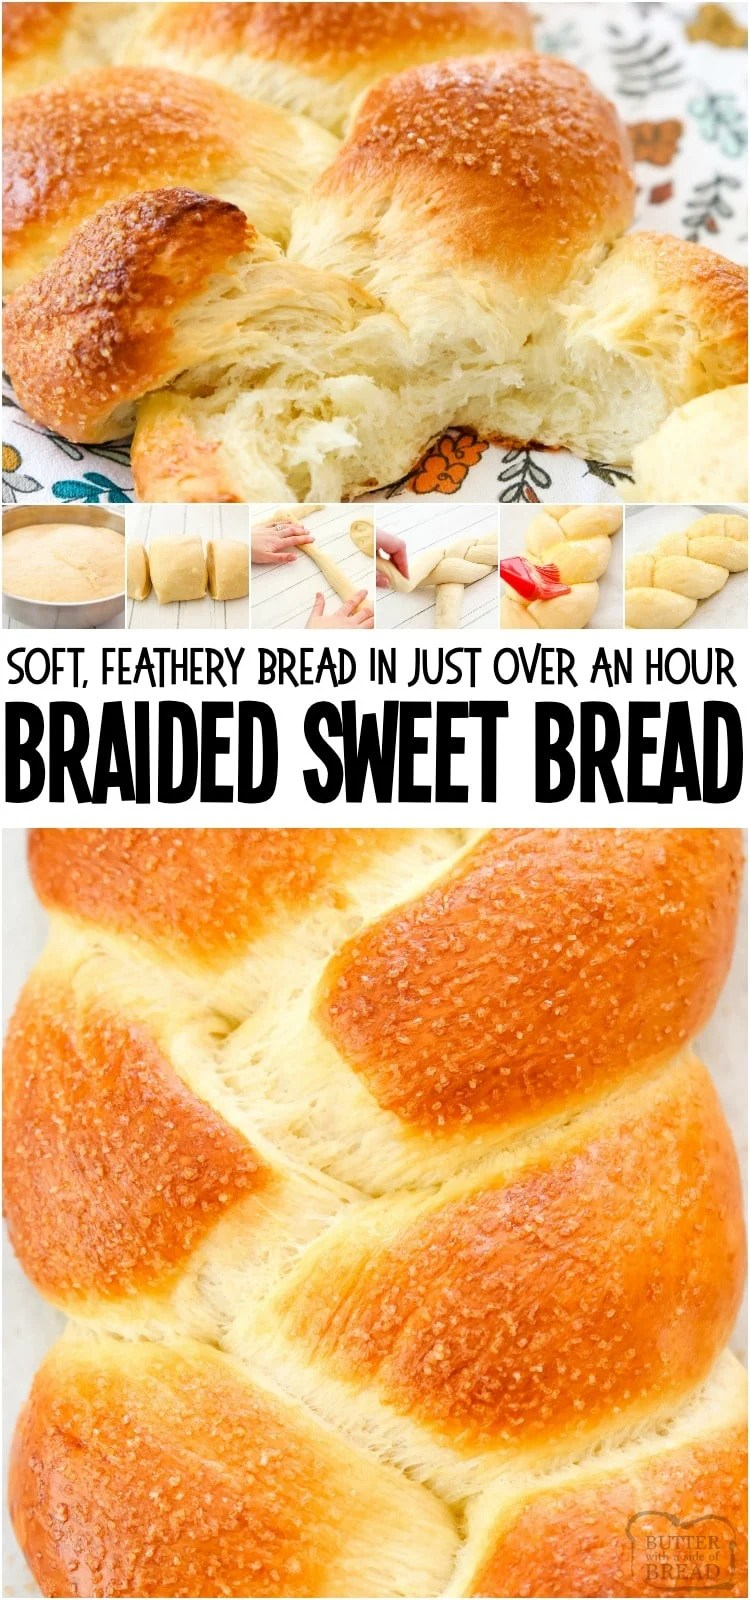 Braided sweet bread is a delicious and gorgeous homemade bread that looks as good as it tastes. With a sweetened golden top crust and fluffy bread inside, you're going to love this sweet bread recipe. #bread #homemade #sweetbread #braided #recipe #baking from BUTTER WITH A SIDE OF BREAD